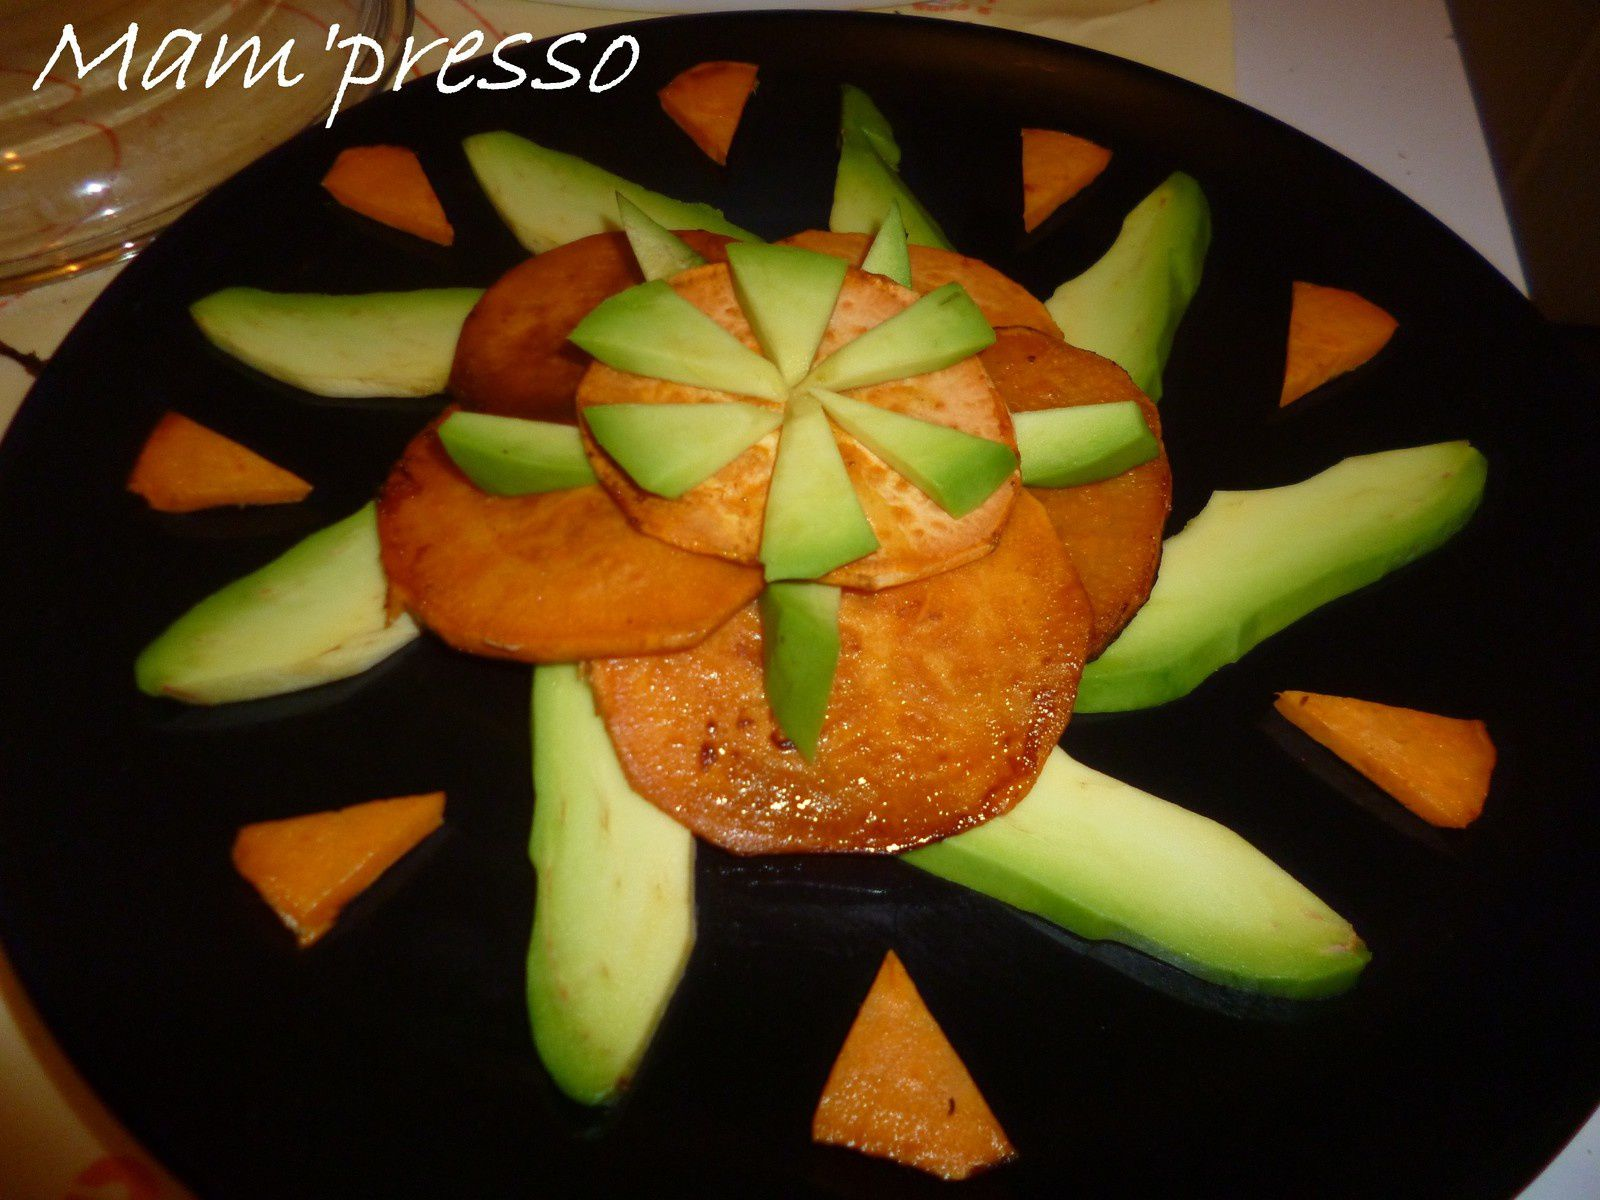 Duo de patate douce et avocat tropical